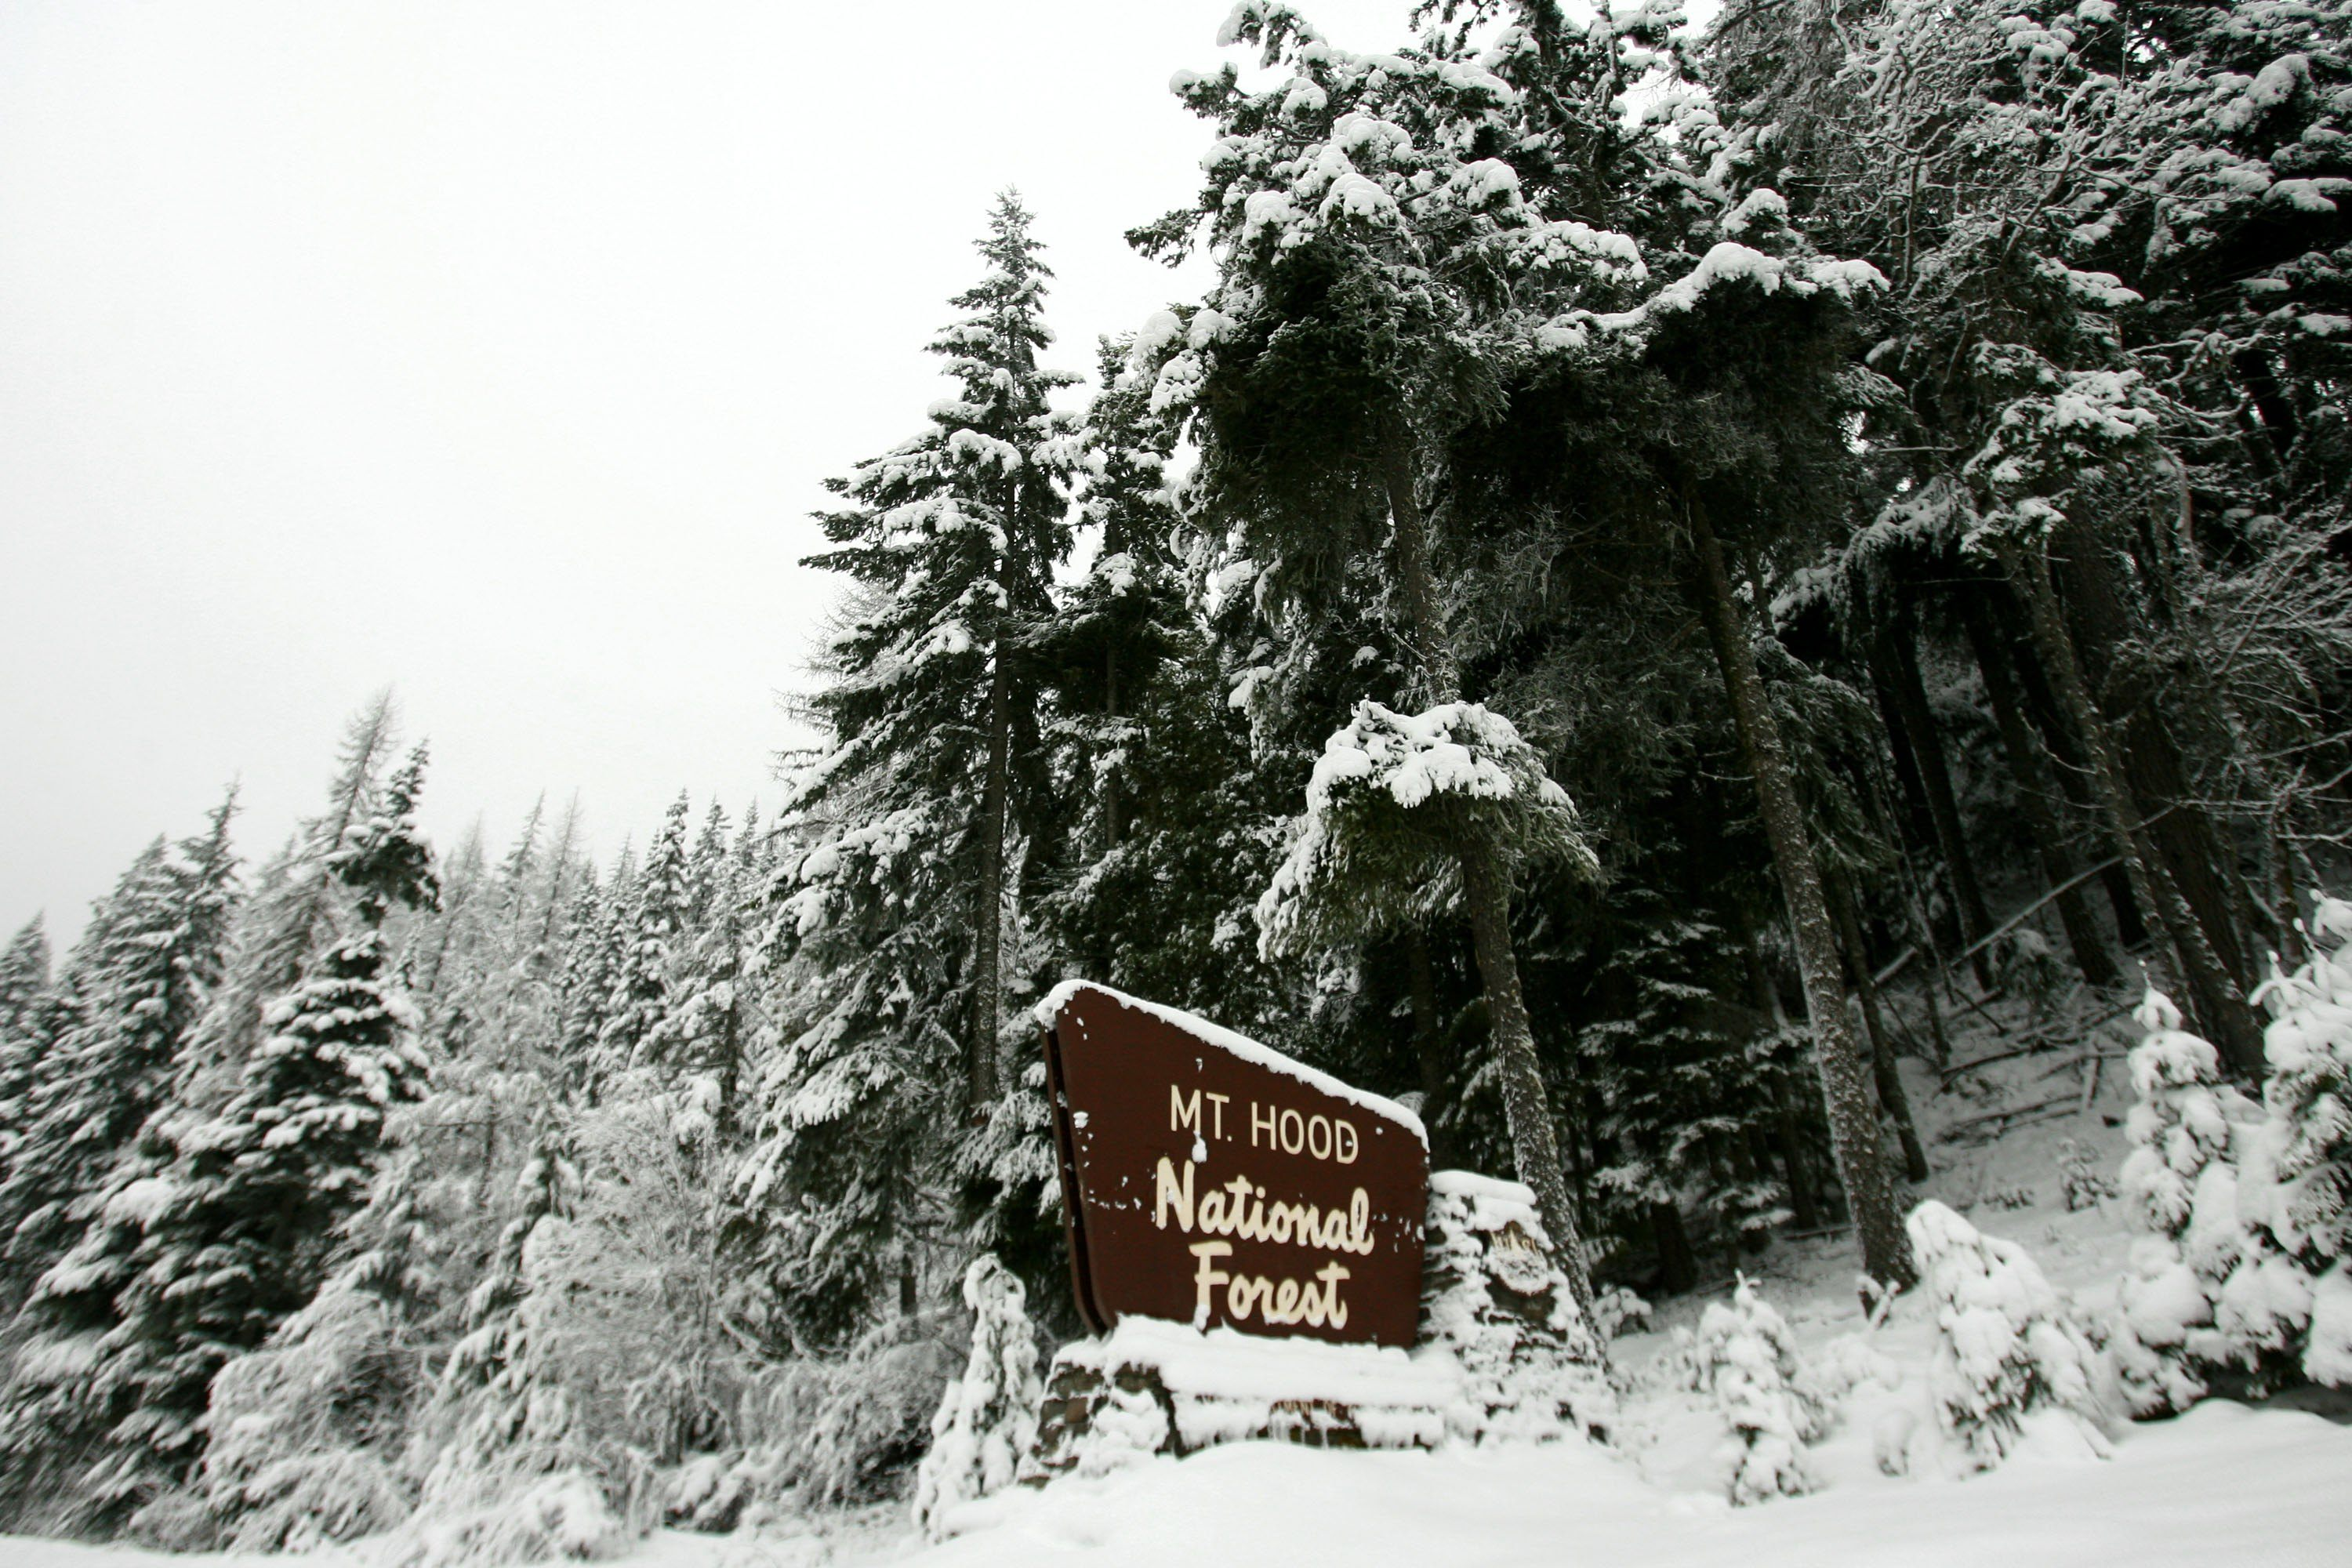 A sign for Mt. Hood National forest